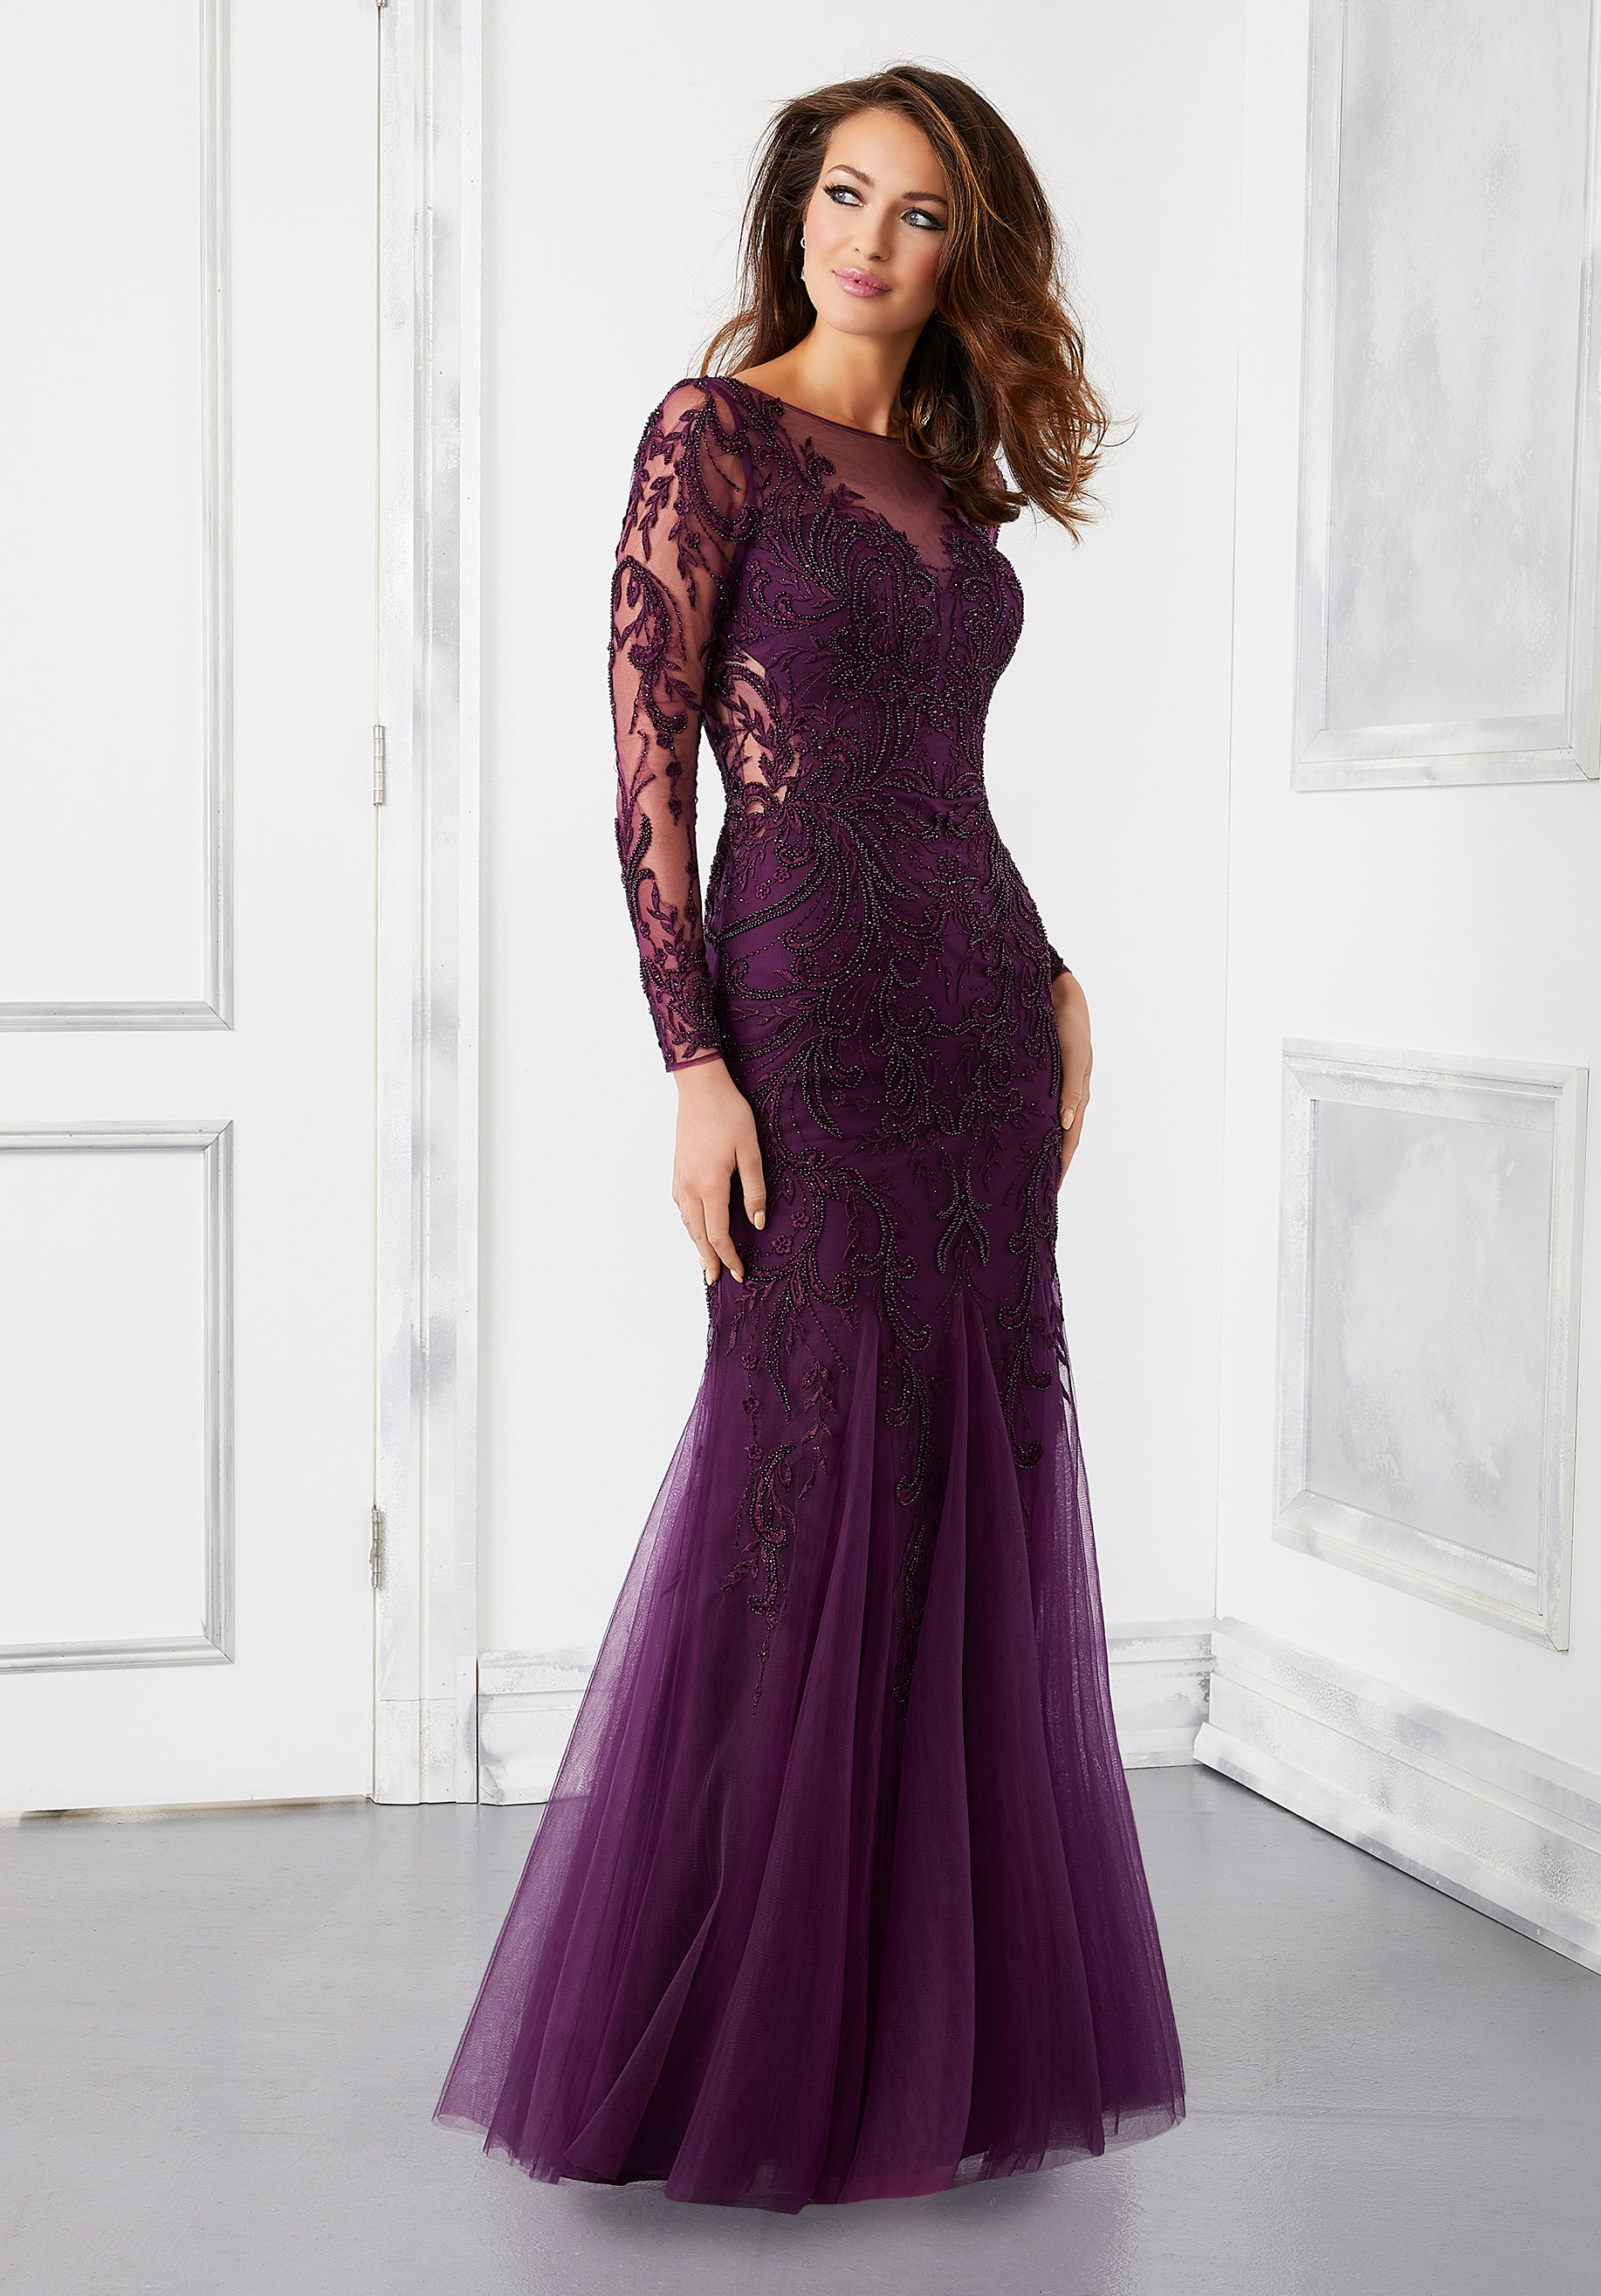 Morilee MGNY Spring 2021 Mother Of The Bride Dresses | Ana ...